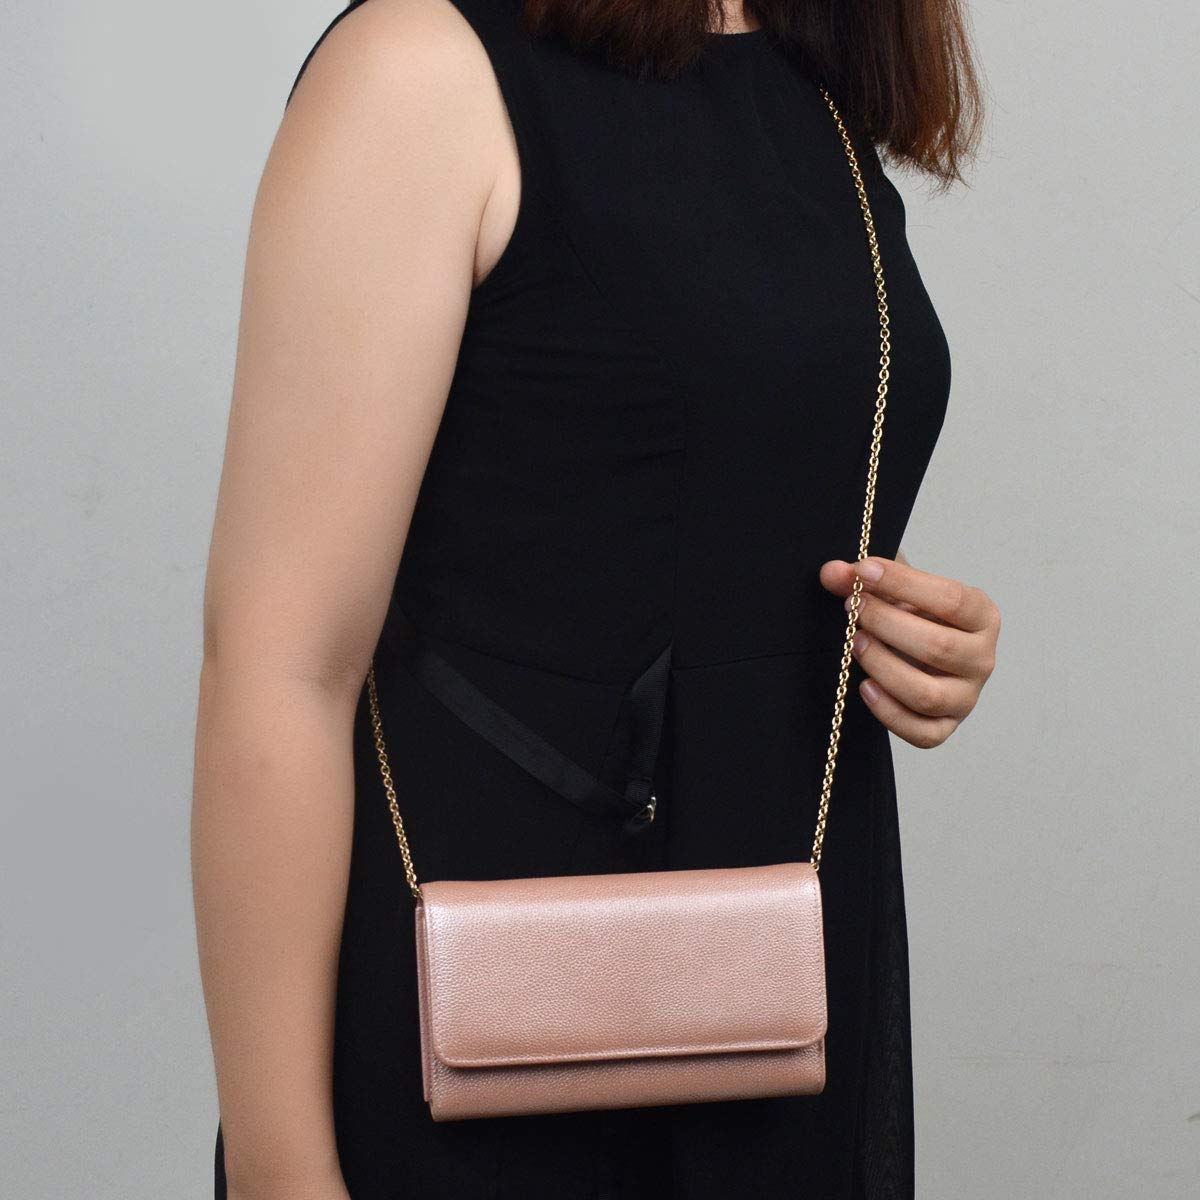 Women RFID Leather Trifold Wallet Cossbody Purse Clutch with Chain Strap (Rose Gold) by Bveyzi (Image #4)